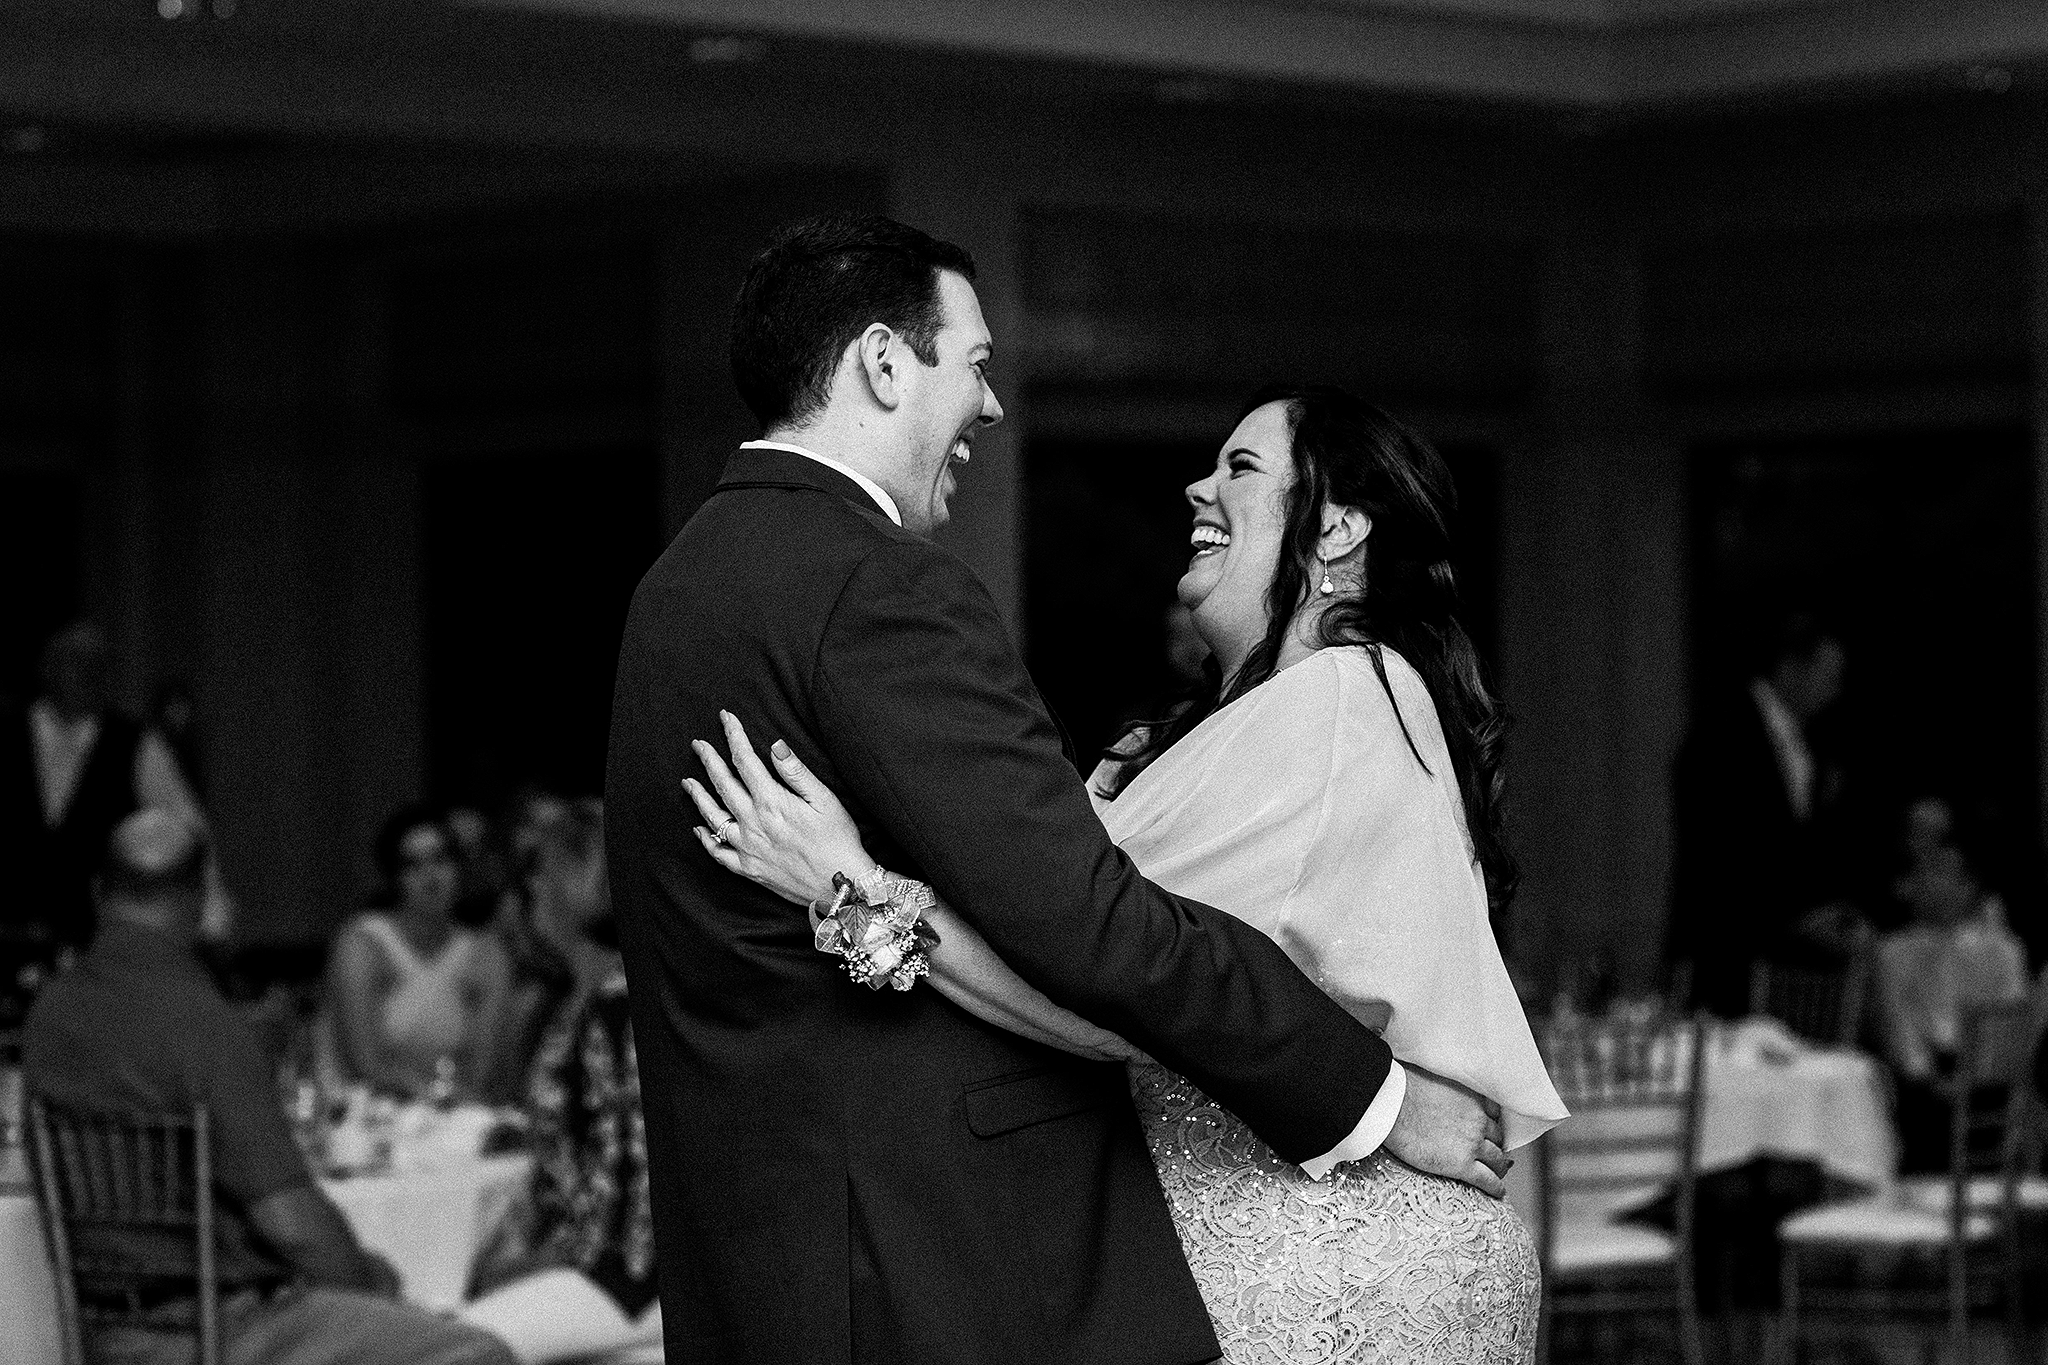 groom and mother dancing, laughing | barsema alumni center dekalb IL wedding photographer